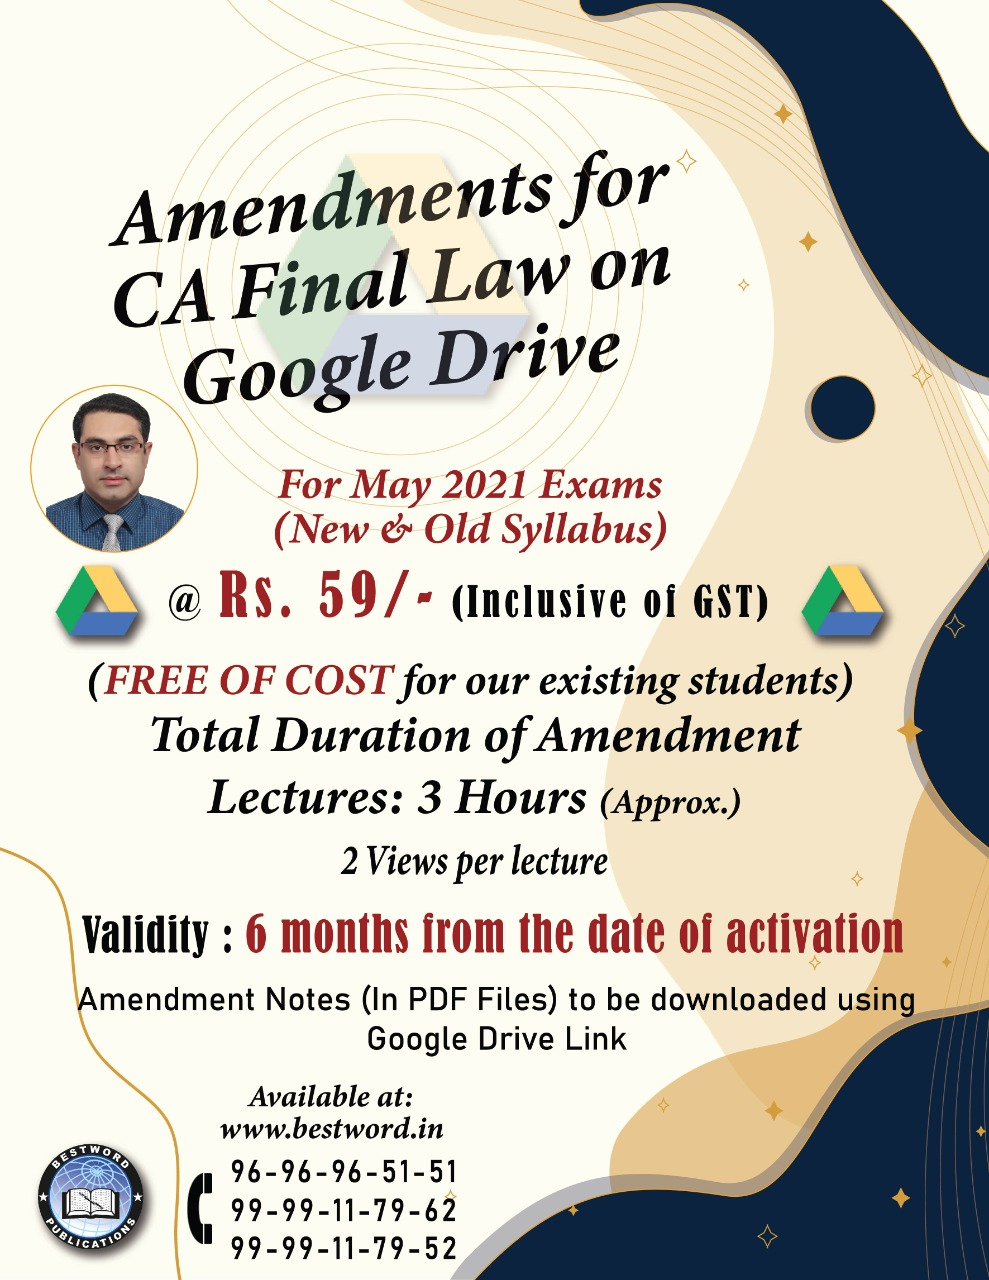 amendments-for-ca-(final)-law-on-google-drive---for-may-2021-exams-(new-and-old-syllabus)